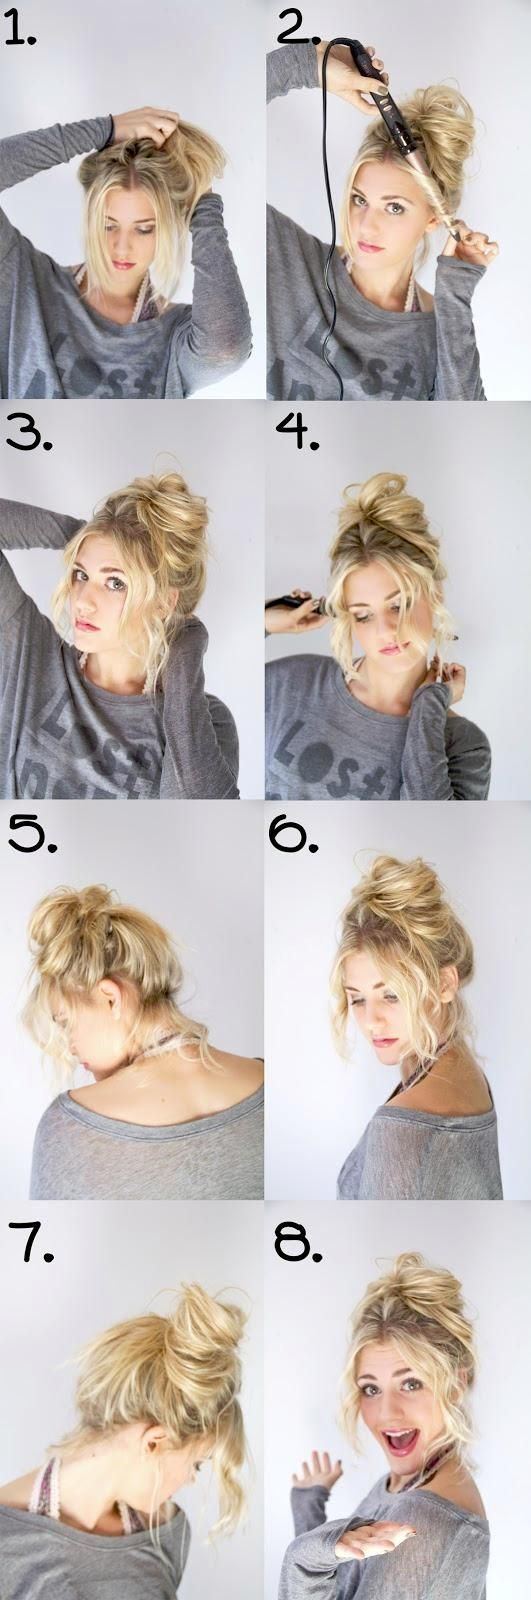 messy bun step by step pictures, photos, and images for